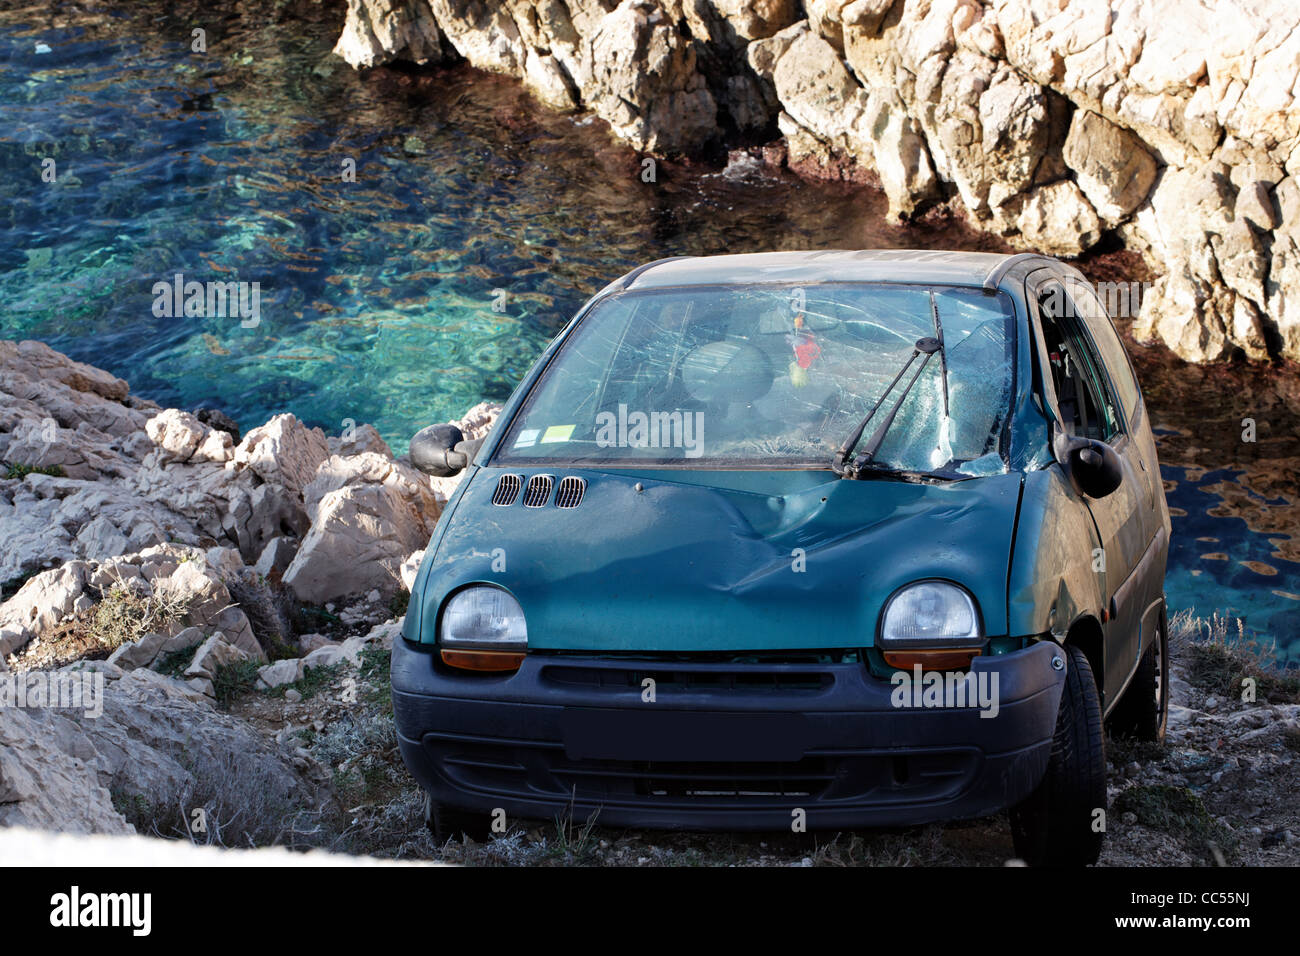 Spectacular accident on the sea shore of Marseille - Stock Image